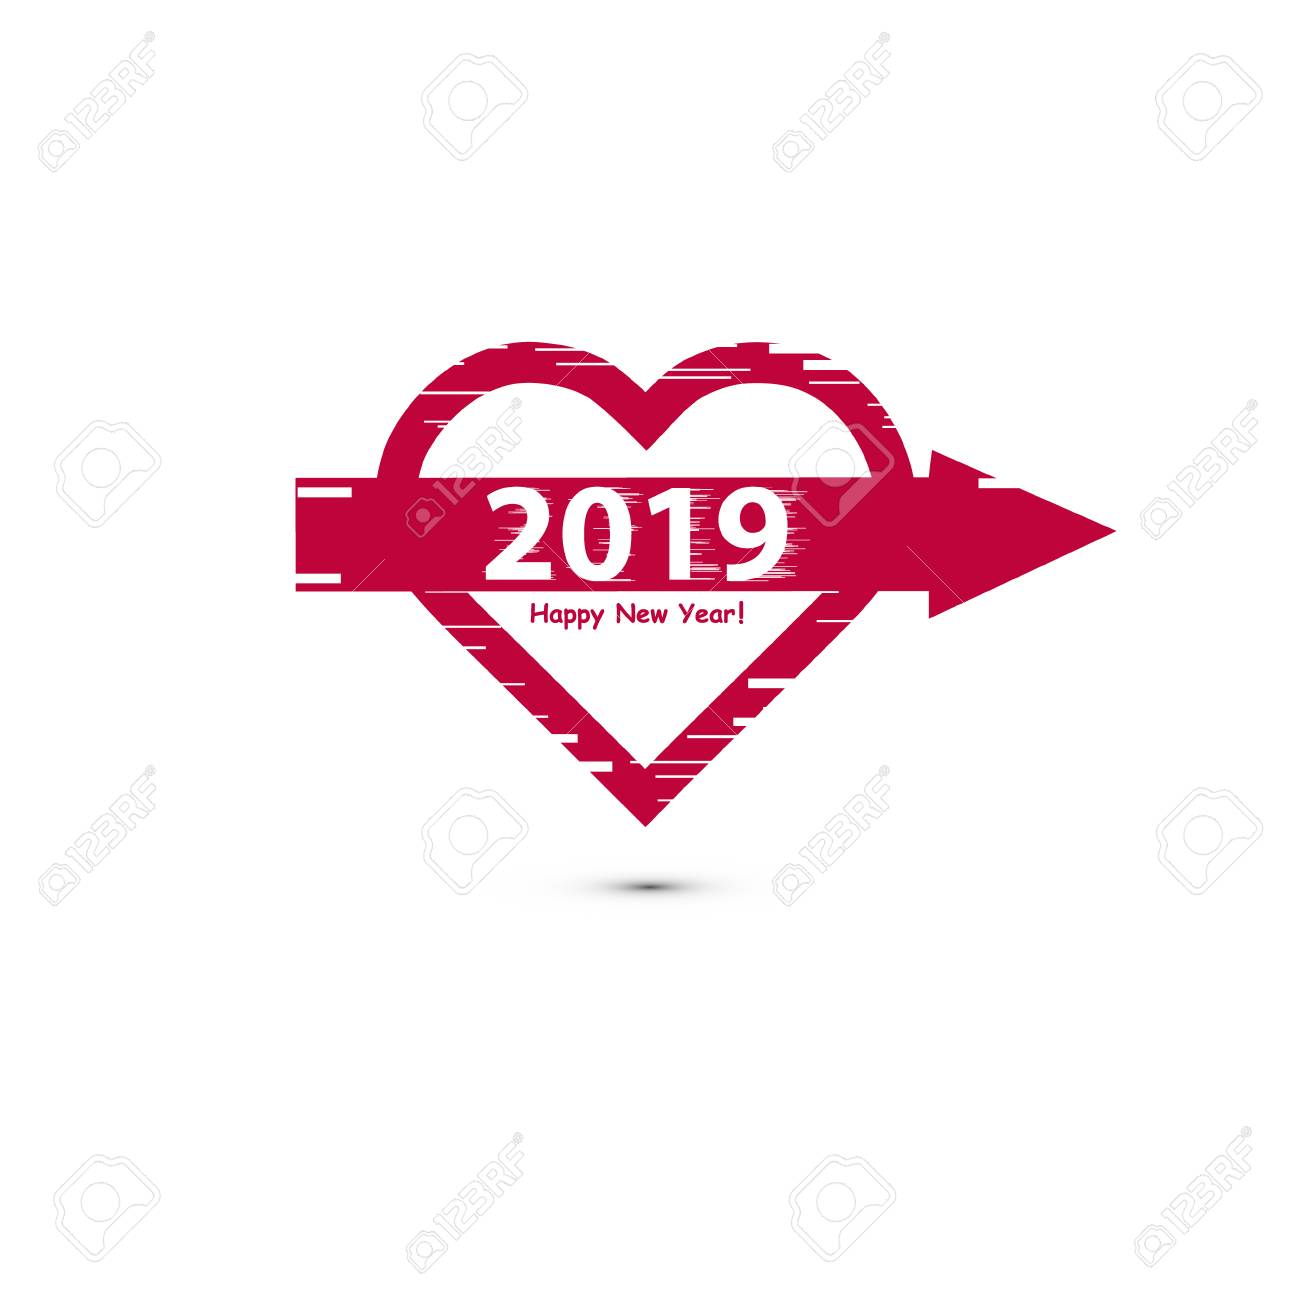 creative happy new year 2019 design flat design with line art heart icon with